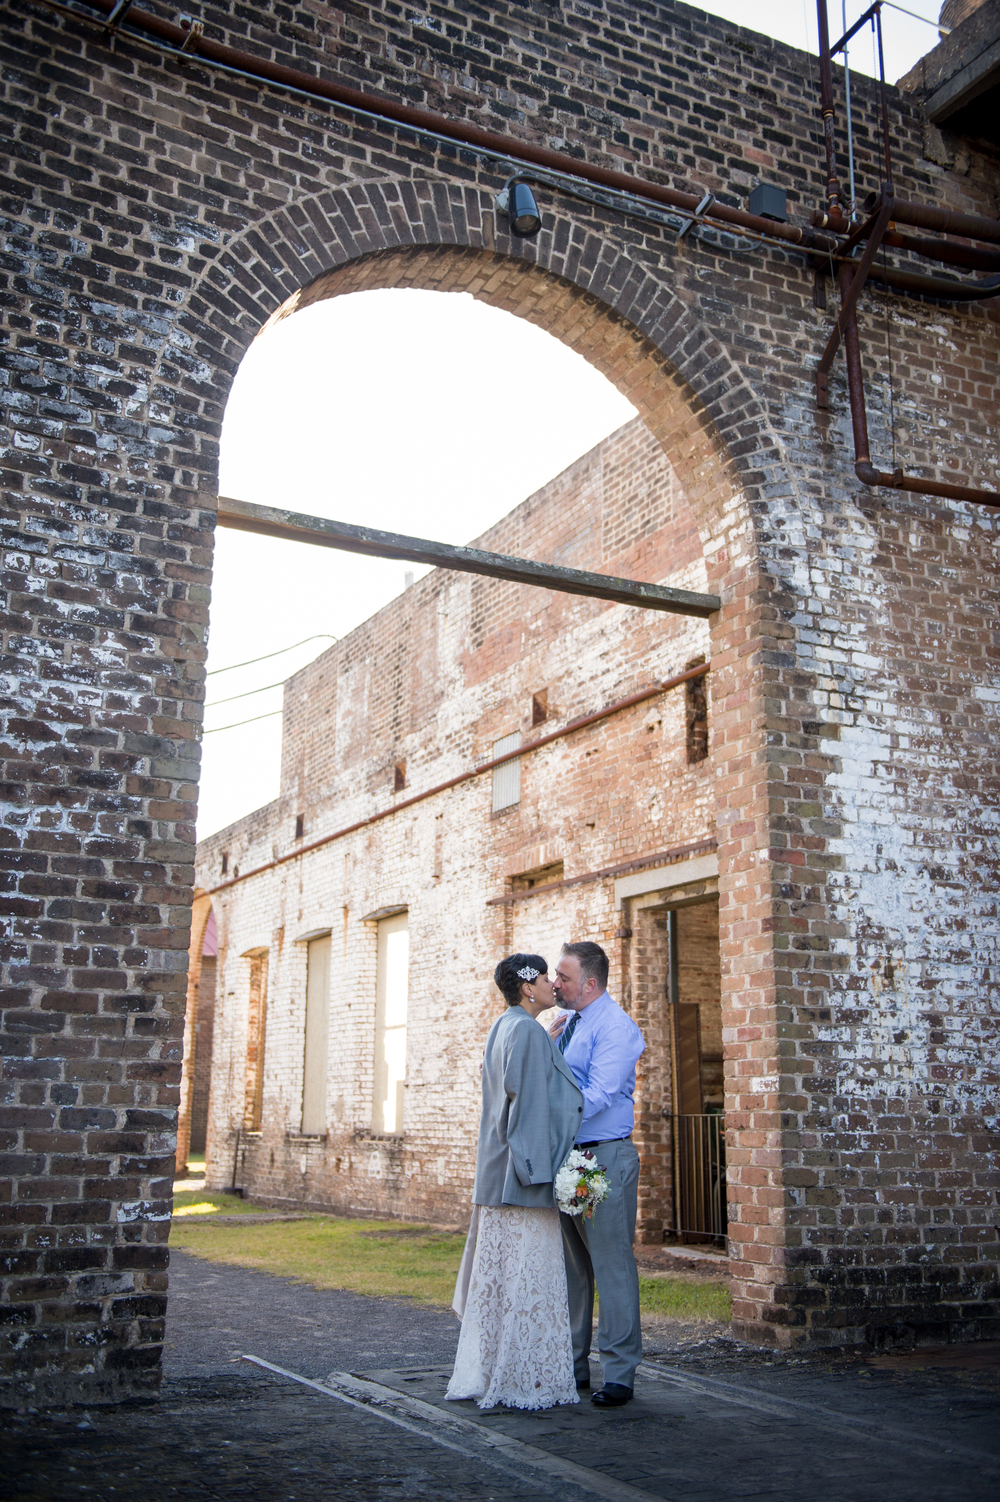 capree-kyle-la-vega-fotografie-roundhouse-railroad-museum-wedding-savannah-wedding-planner-rustic-savannah-wedding-museum-wedding-ivory-and-beau-savannah-bridal-boutique-savannah-weddings-savannah-event-designer-savannah-florist-4.jpg